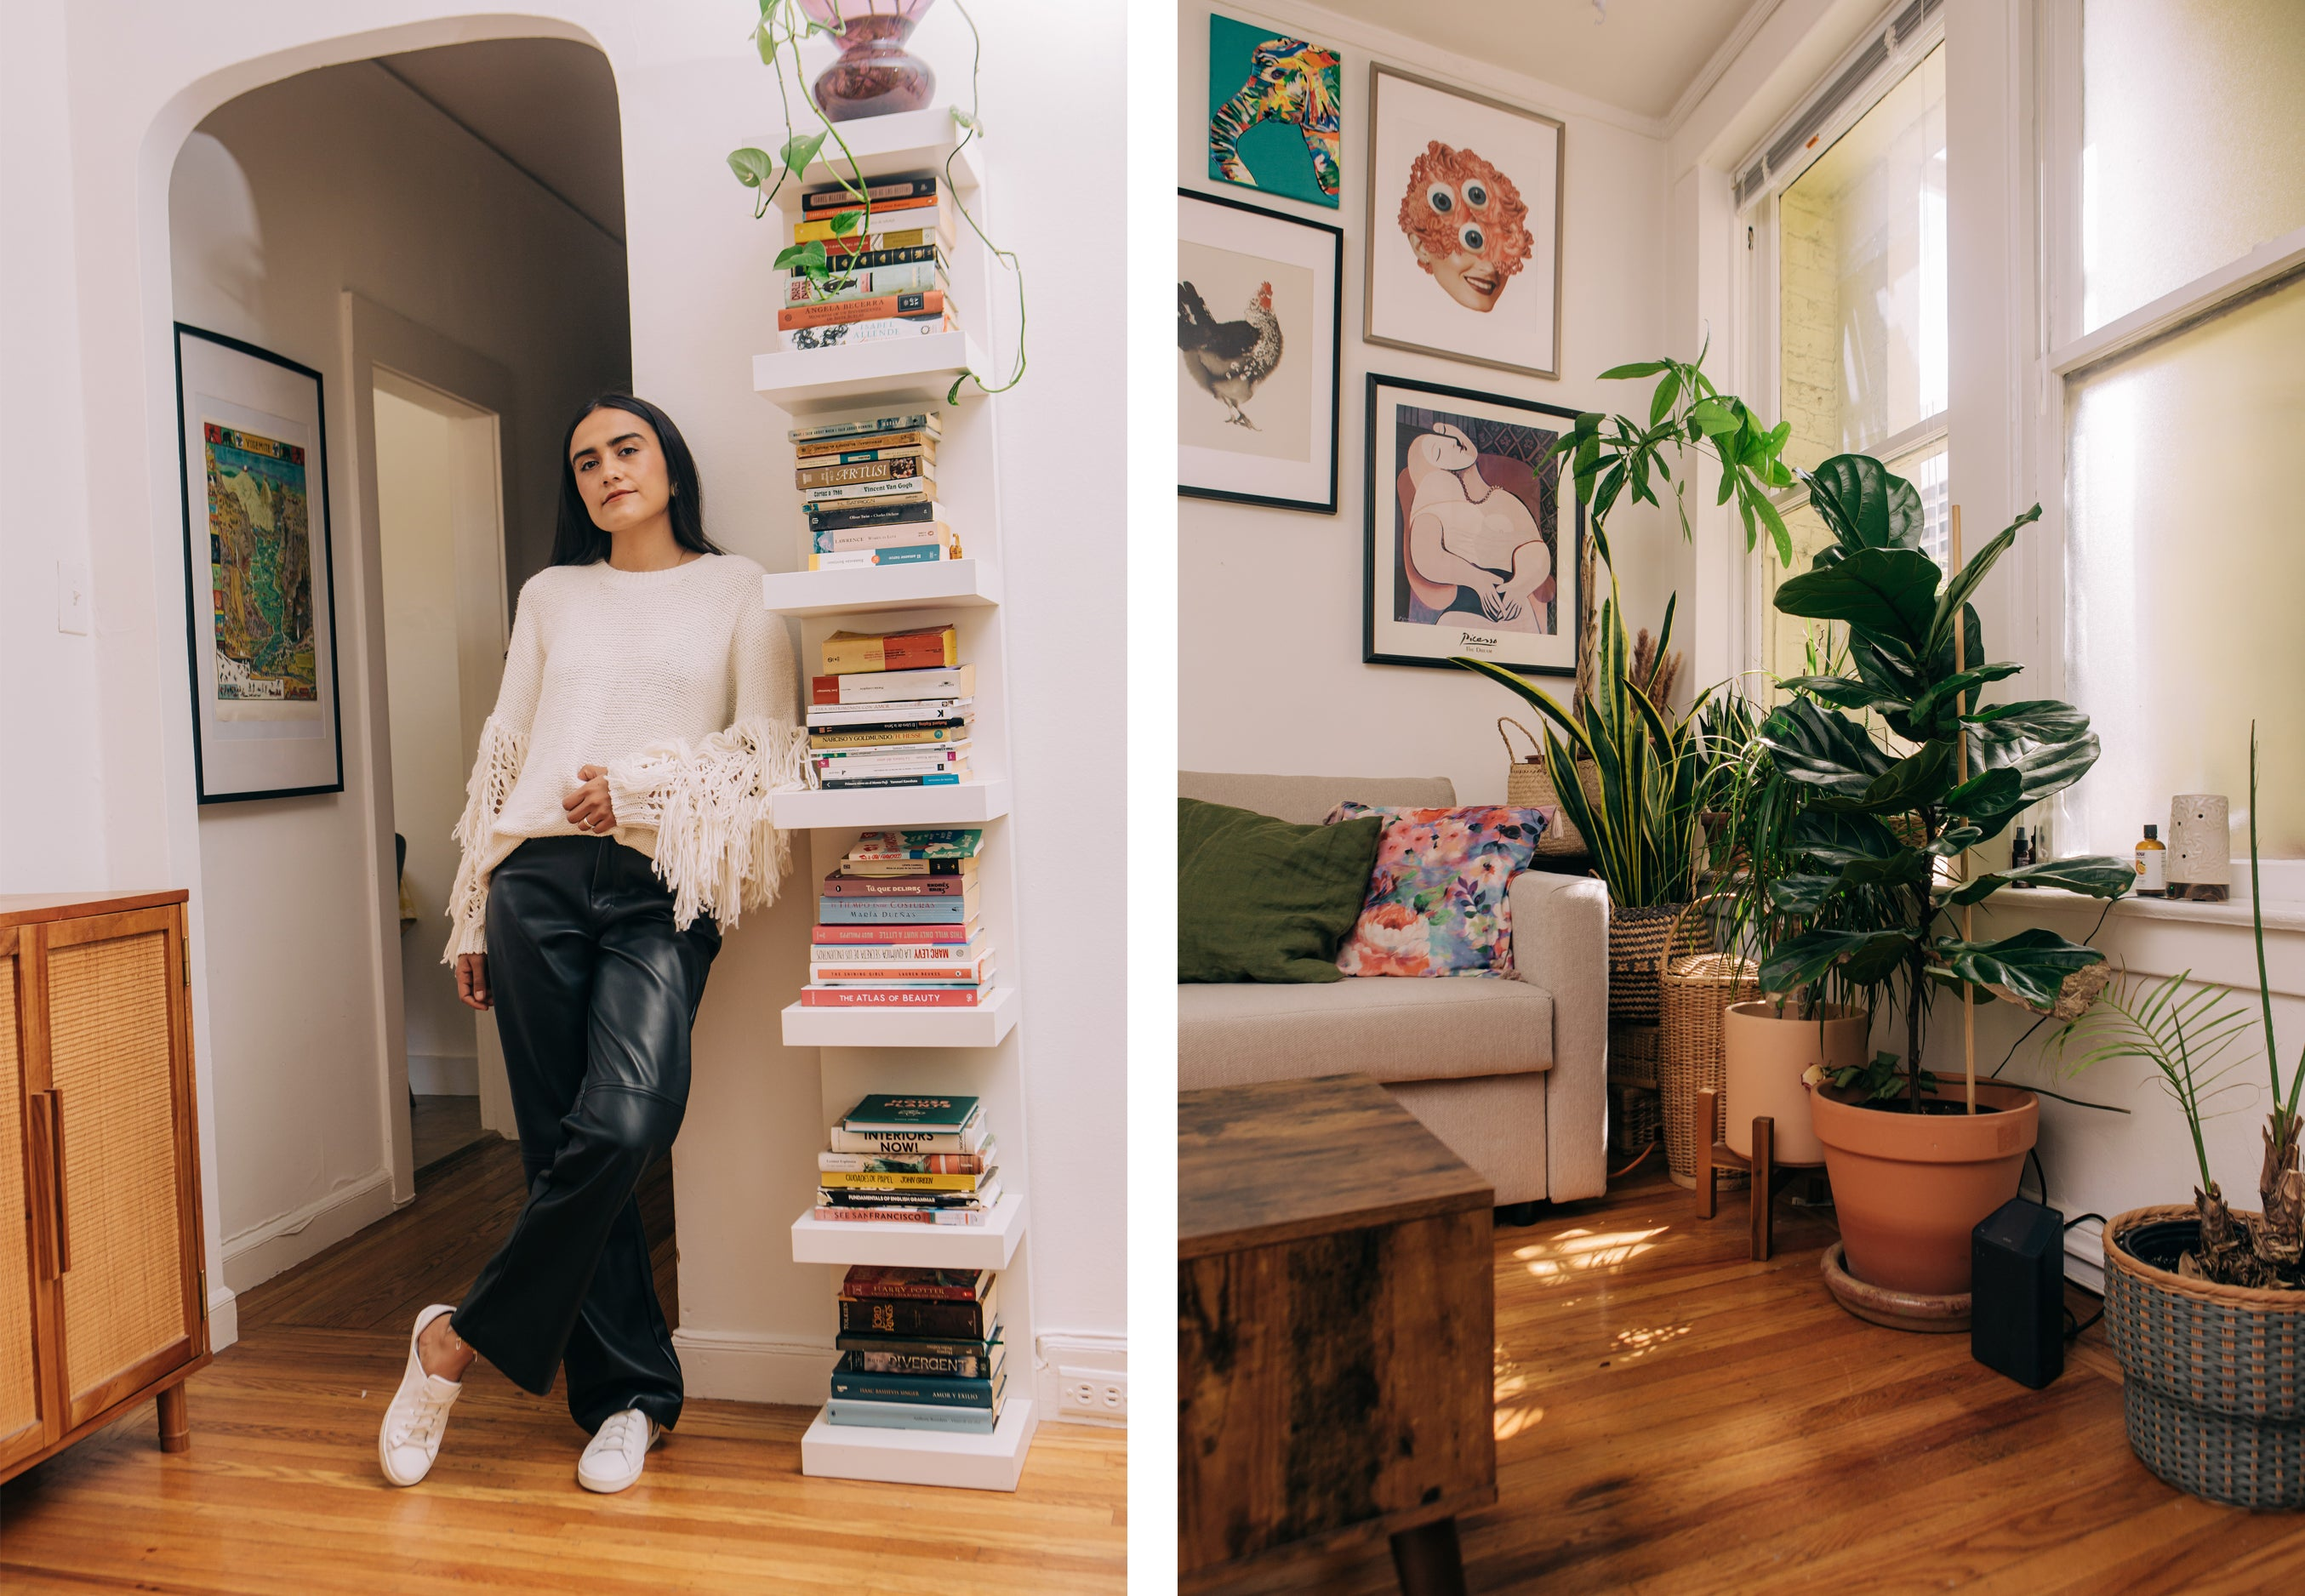 At home with Laura Gelvez